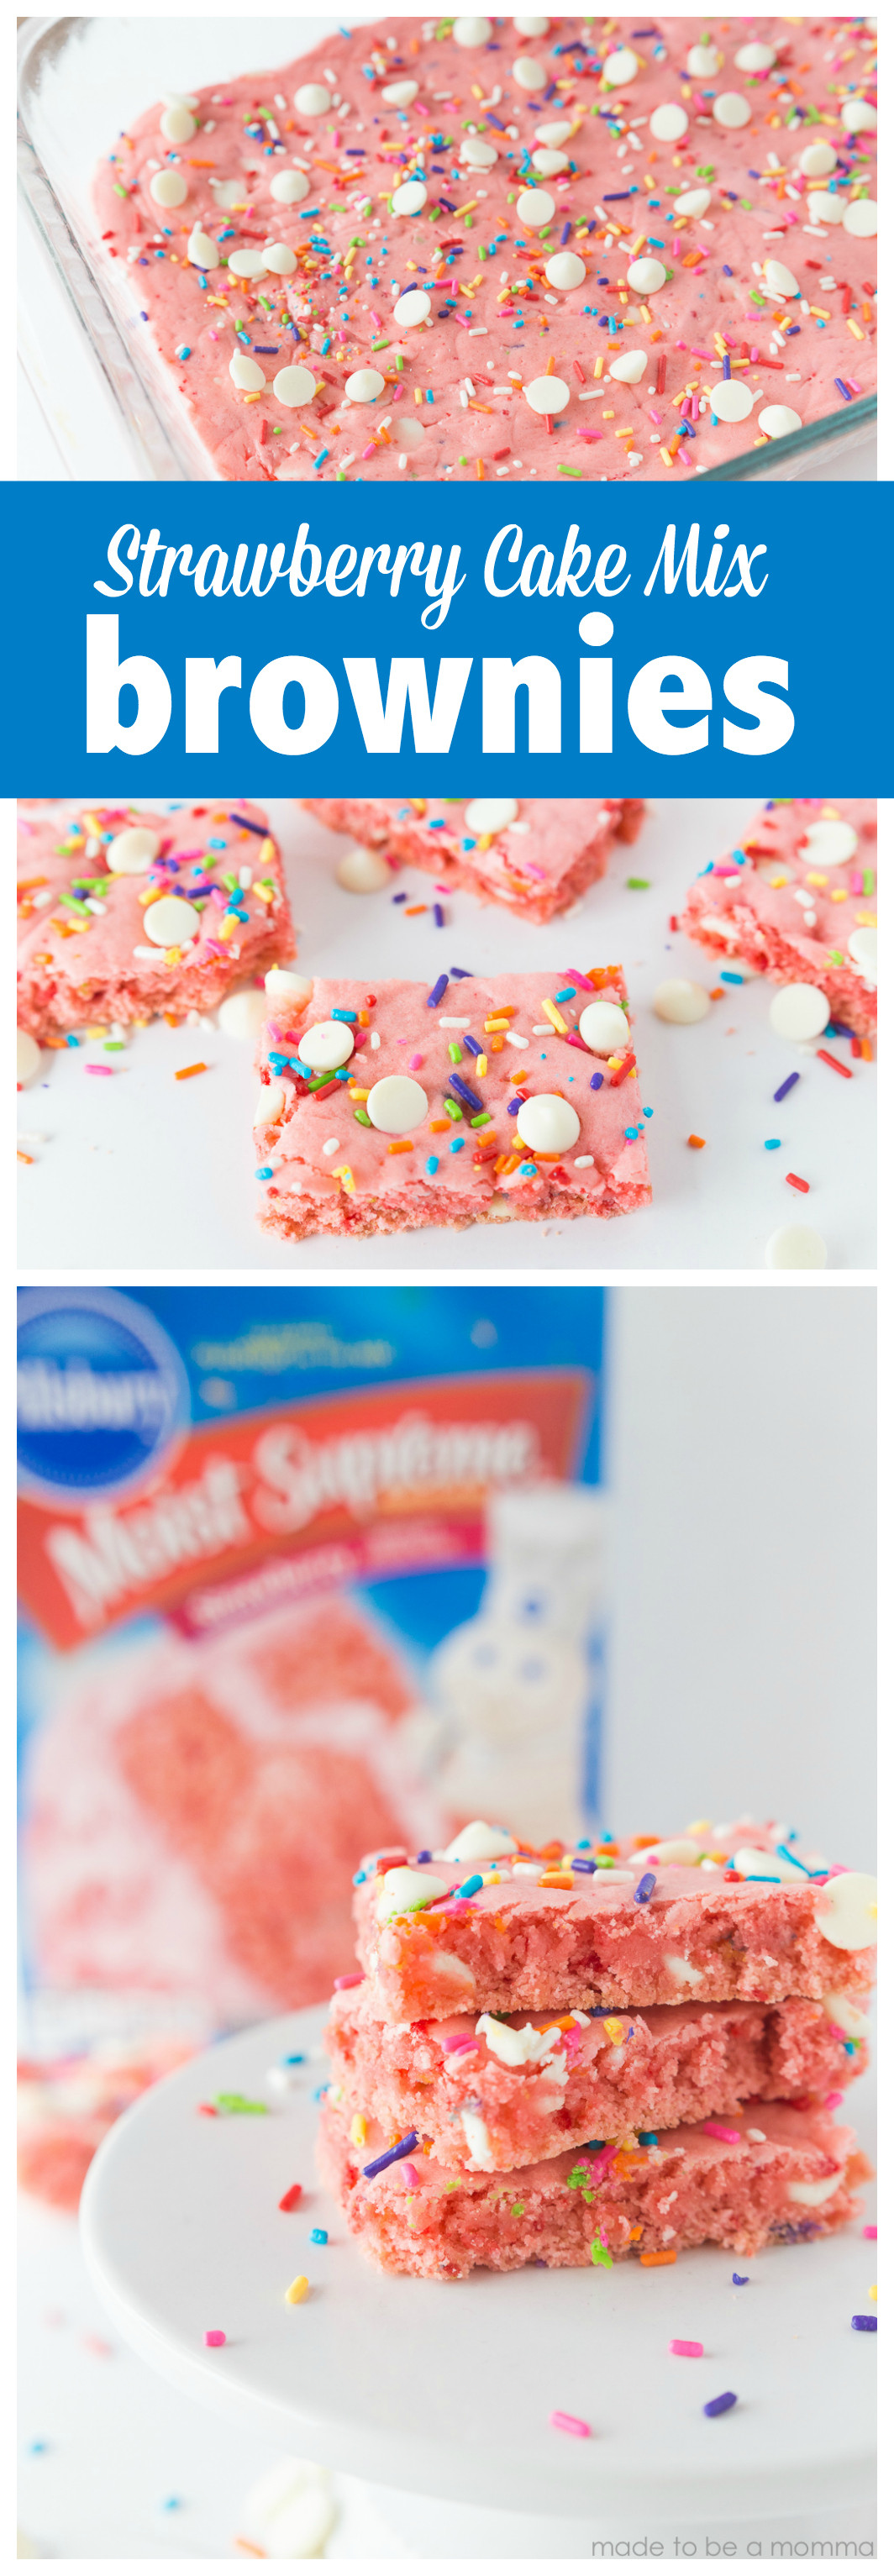 Strawberry Cake Mix  Strawberry Cake Mix Brownies Made To Be A Momma